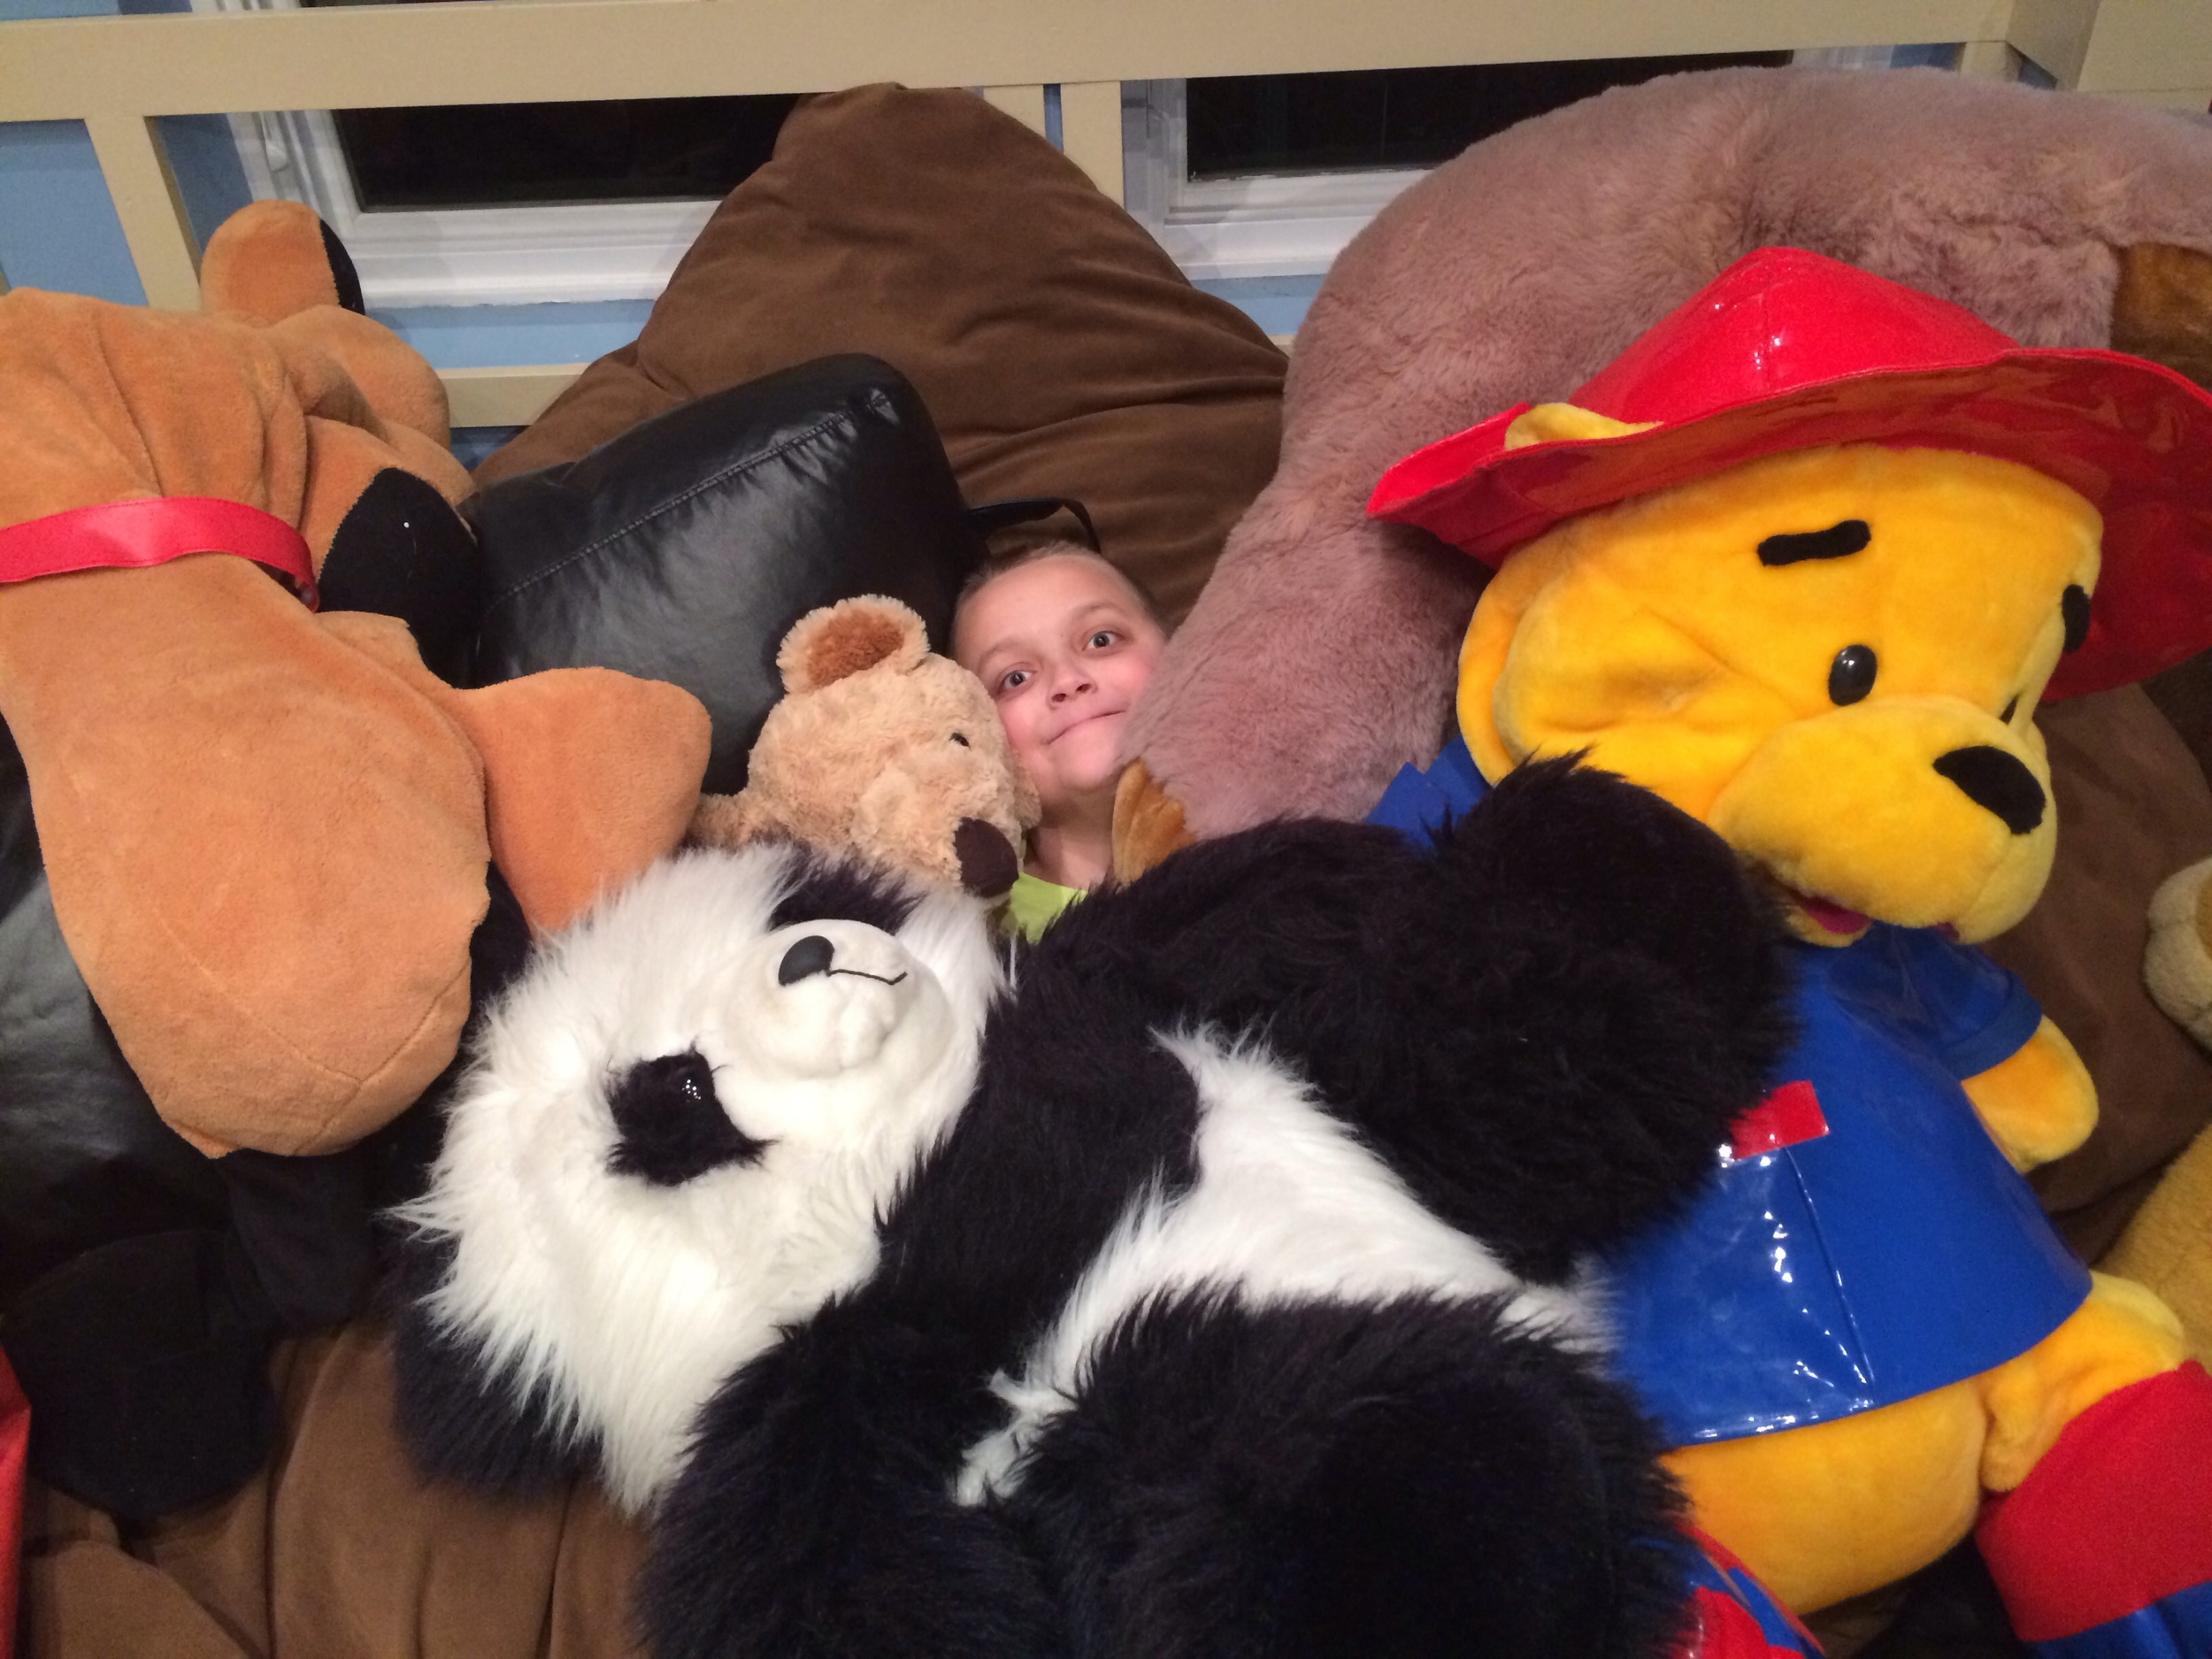 The secret room kids can discover at the Ronald McDonald House.